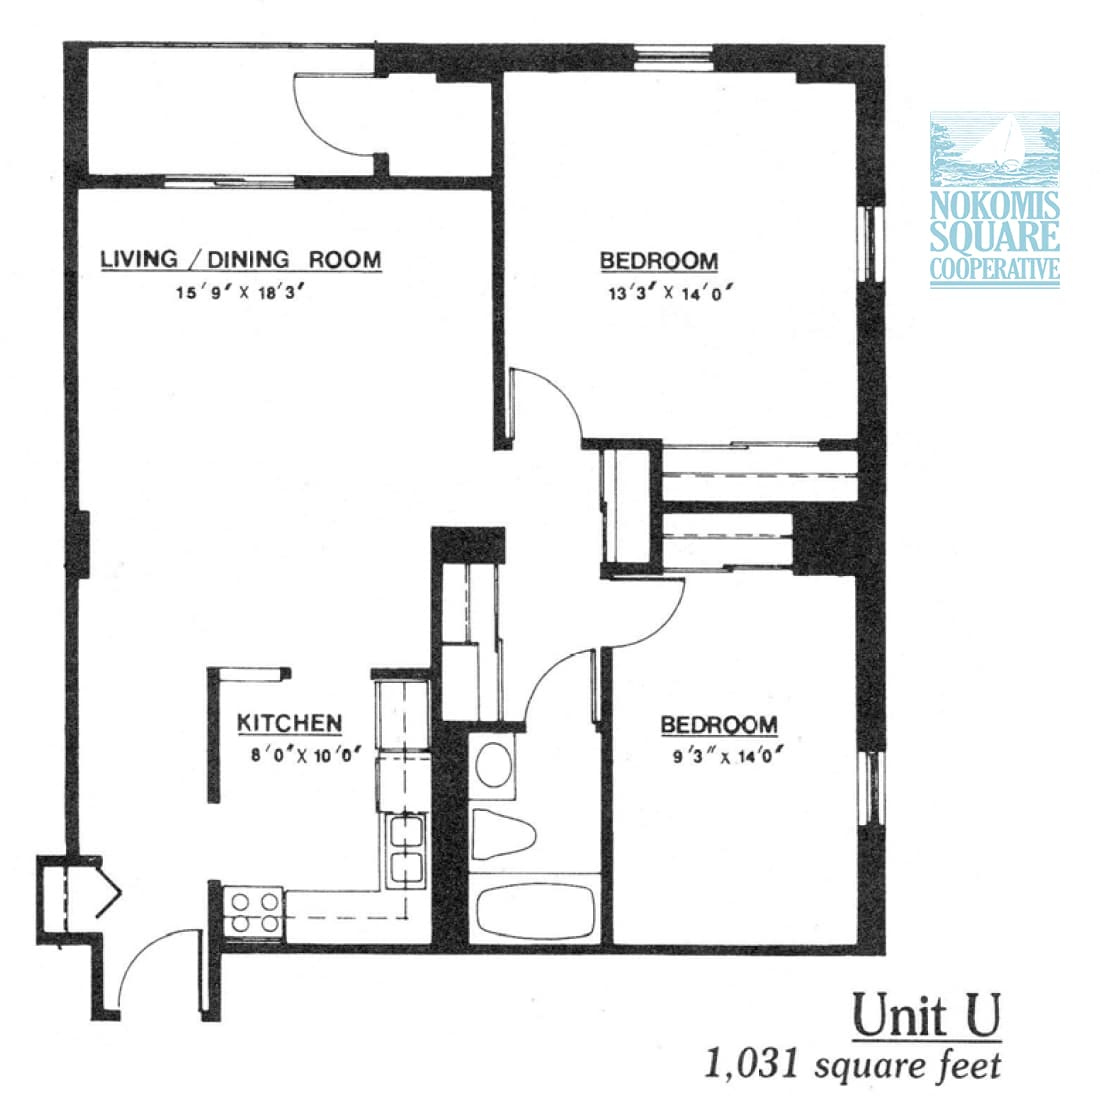 2 br Floorplan Unit U - Nokomis Square Senior Cooperative